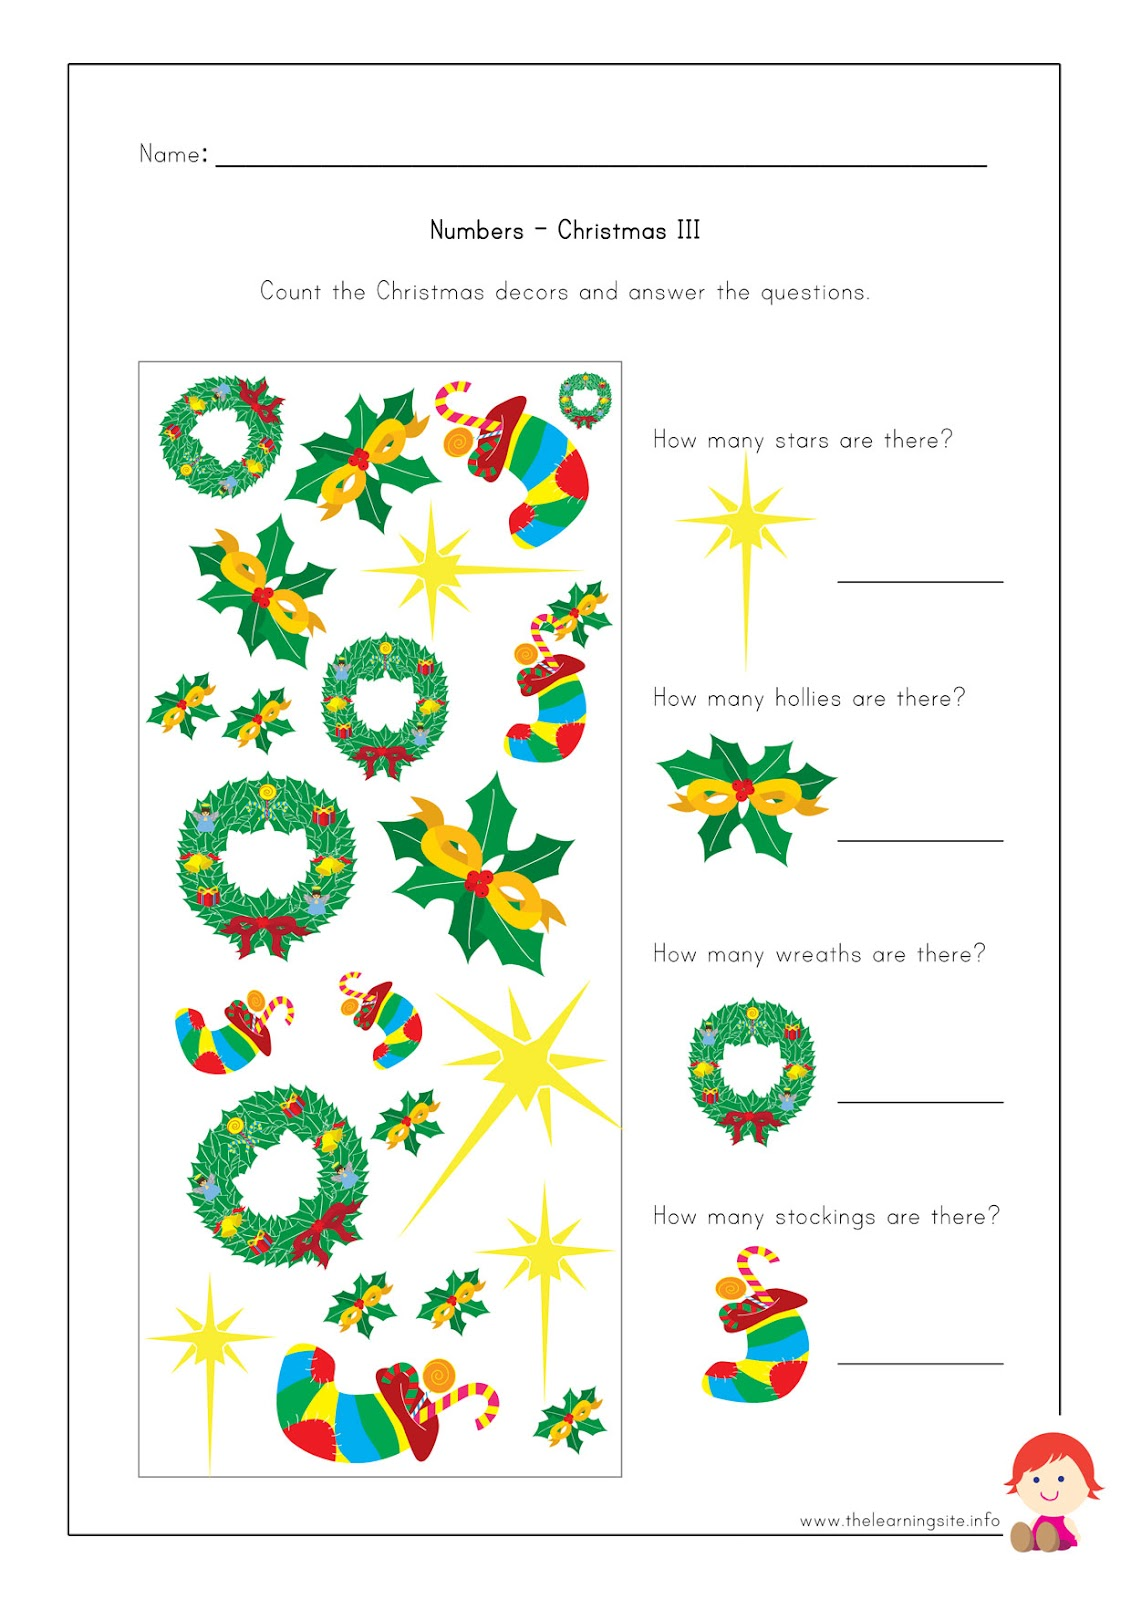 Free Printable Worksheets For Christmas : Free christmas worksheets new calendar template site